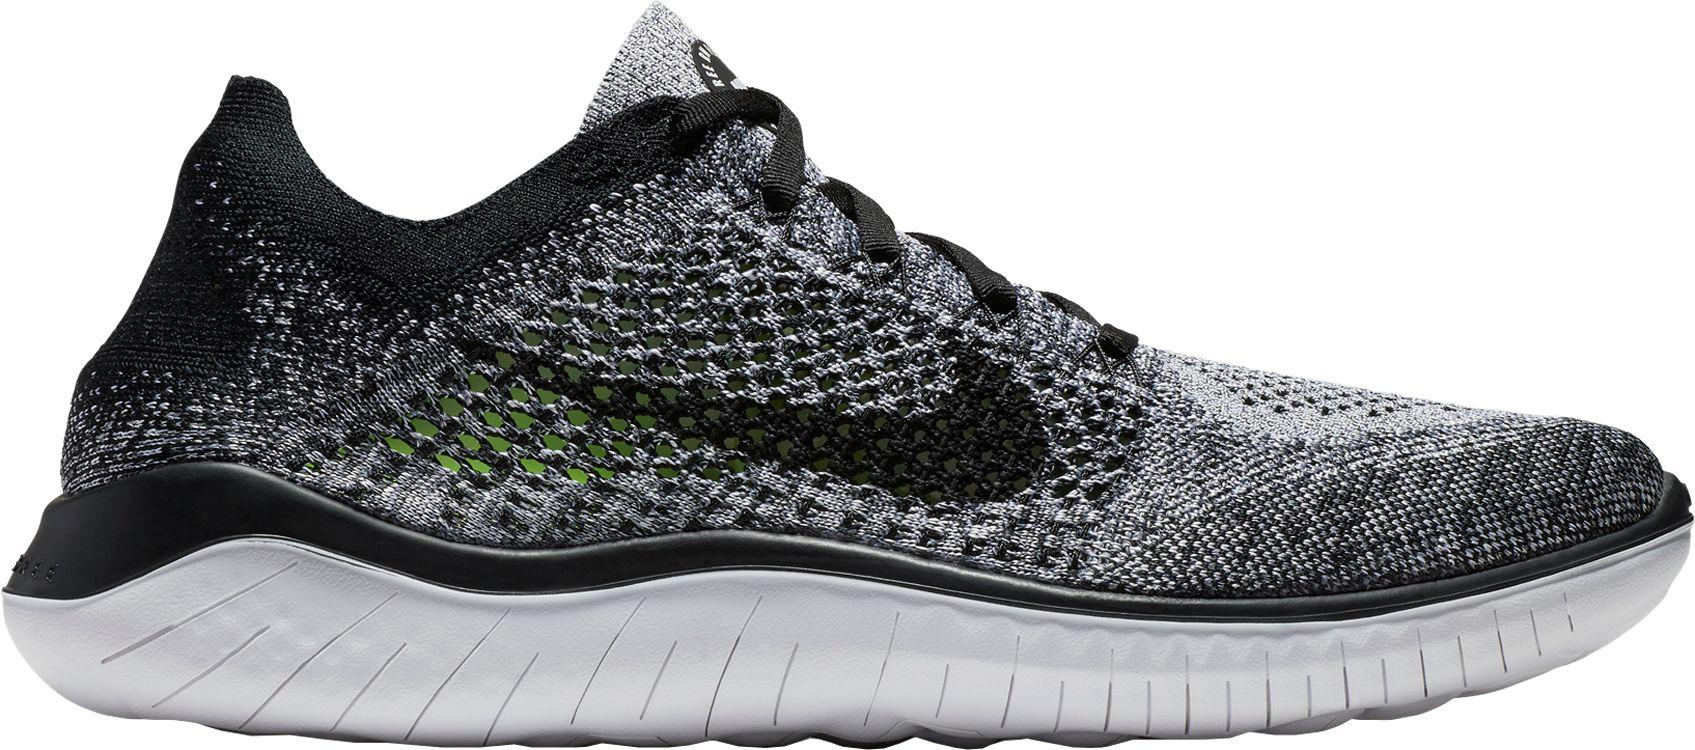 8b20bc38167 Lyst - Nike Free Rn Flyknit 2018 Running Shoes in Black for Men